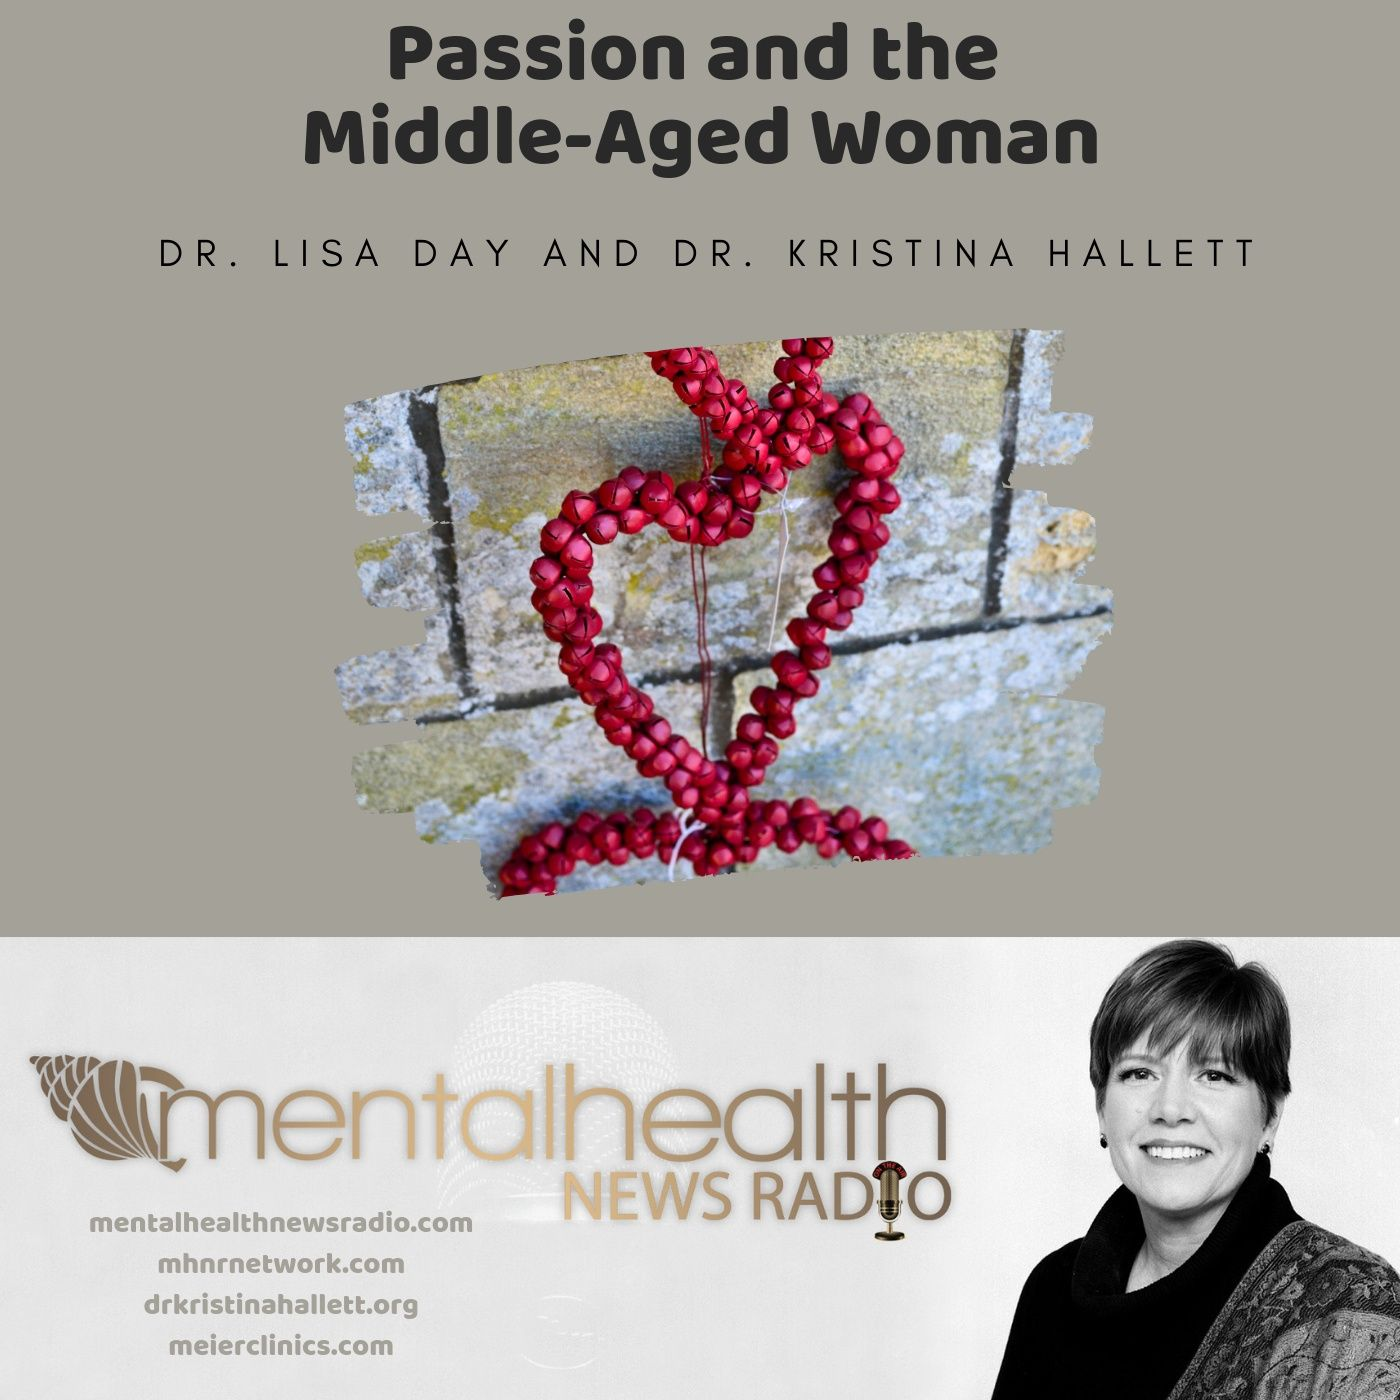 Mental Health News Radio - Passion and the Middle-Aged Woman